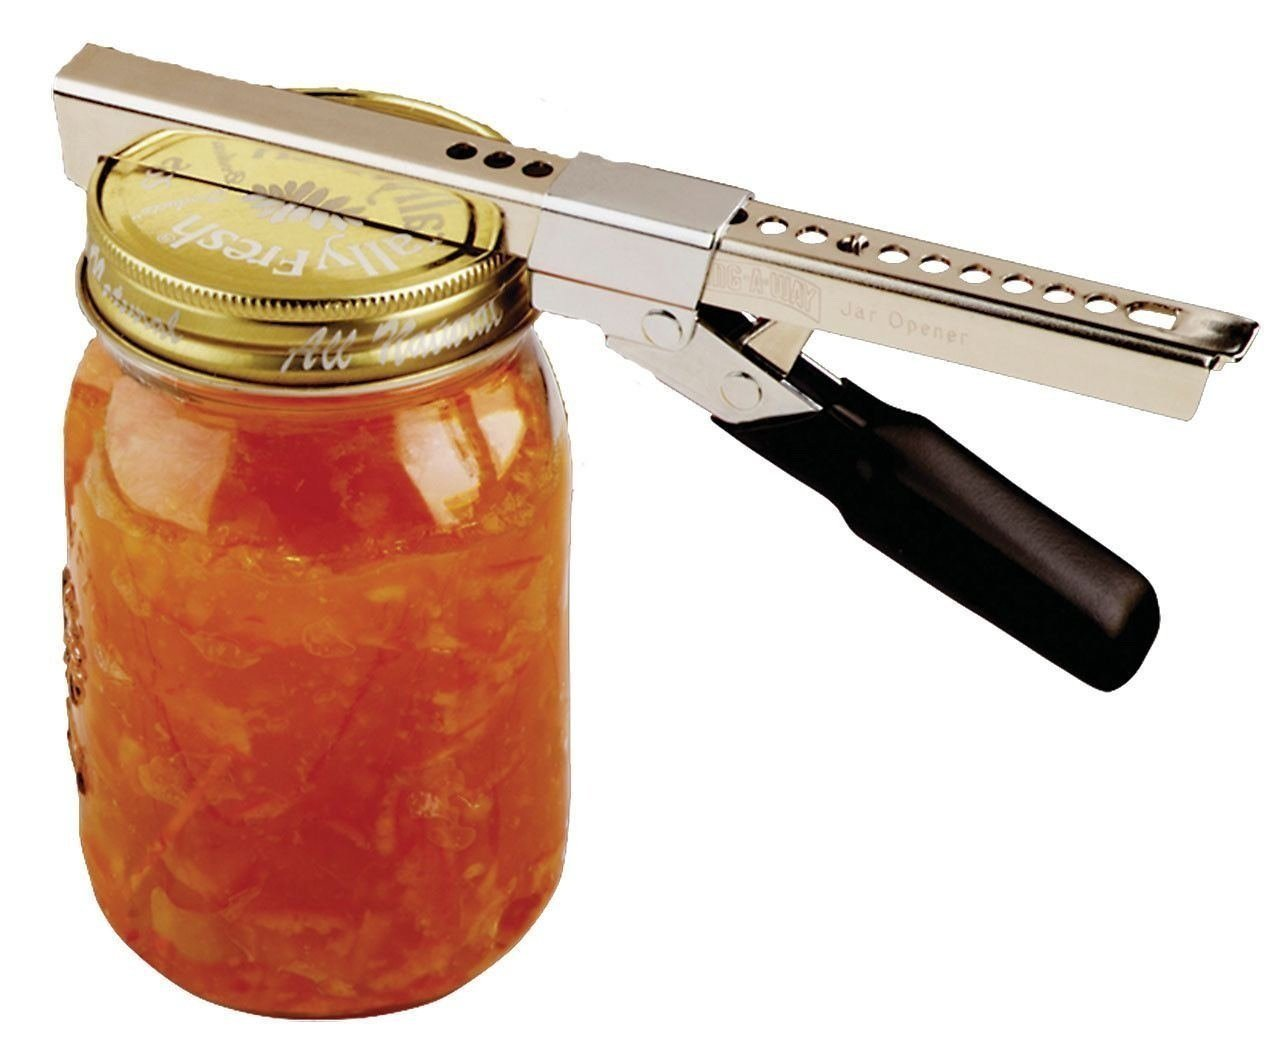 Adjustable Jar Opener Cooks Illustrated Top Pick for Arthritis by Swing a way